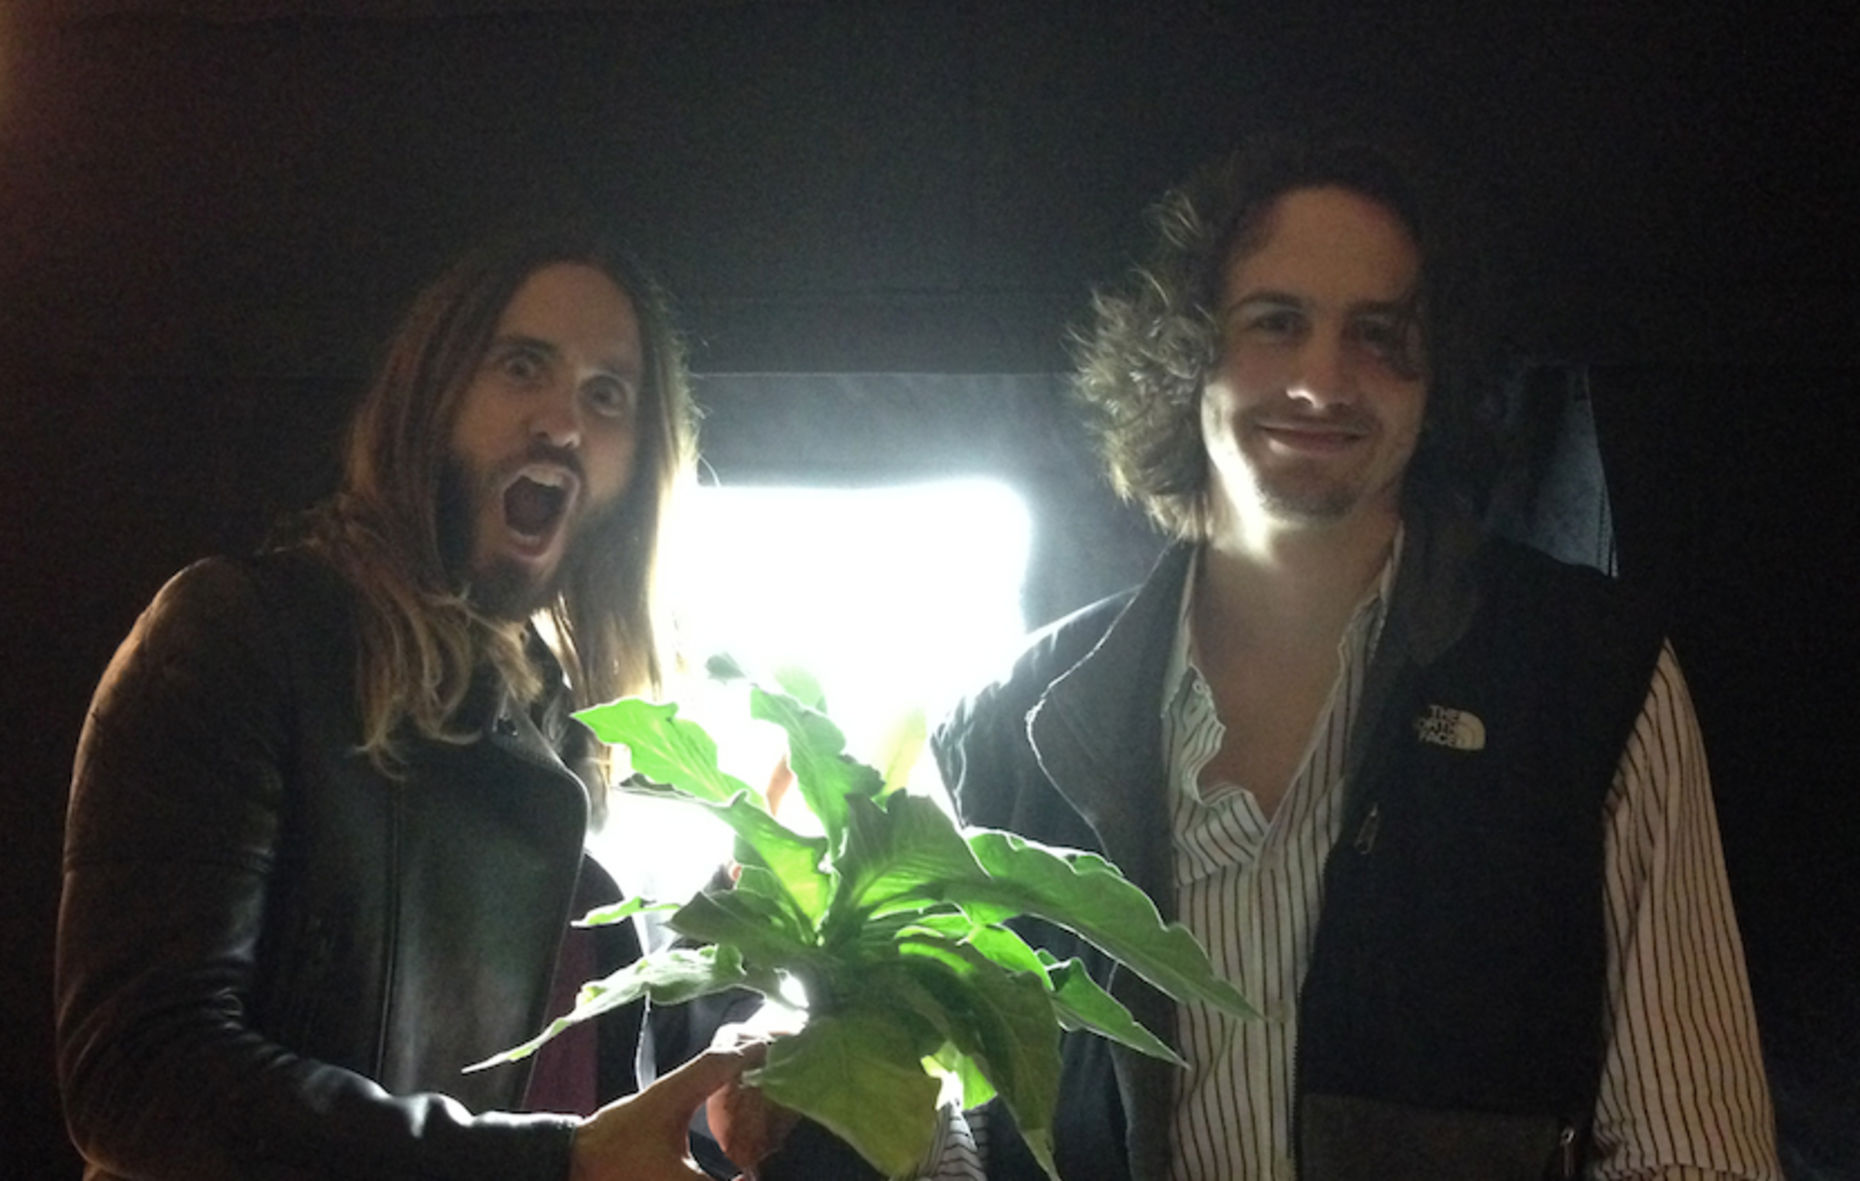 Cambrian Genomics founder Austen Heinz (right) with Jared Leto. Courtesy photo.